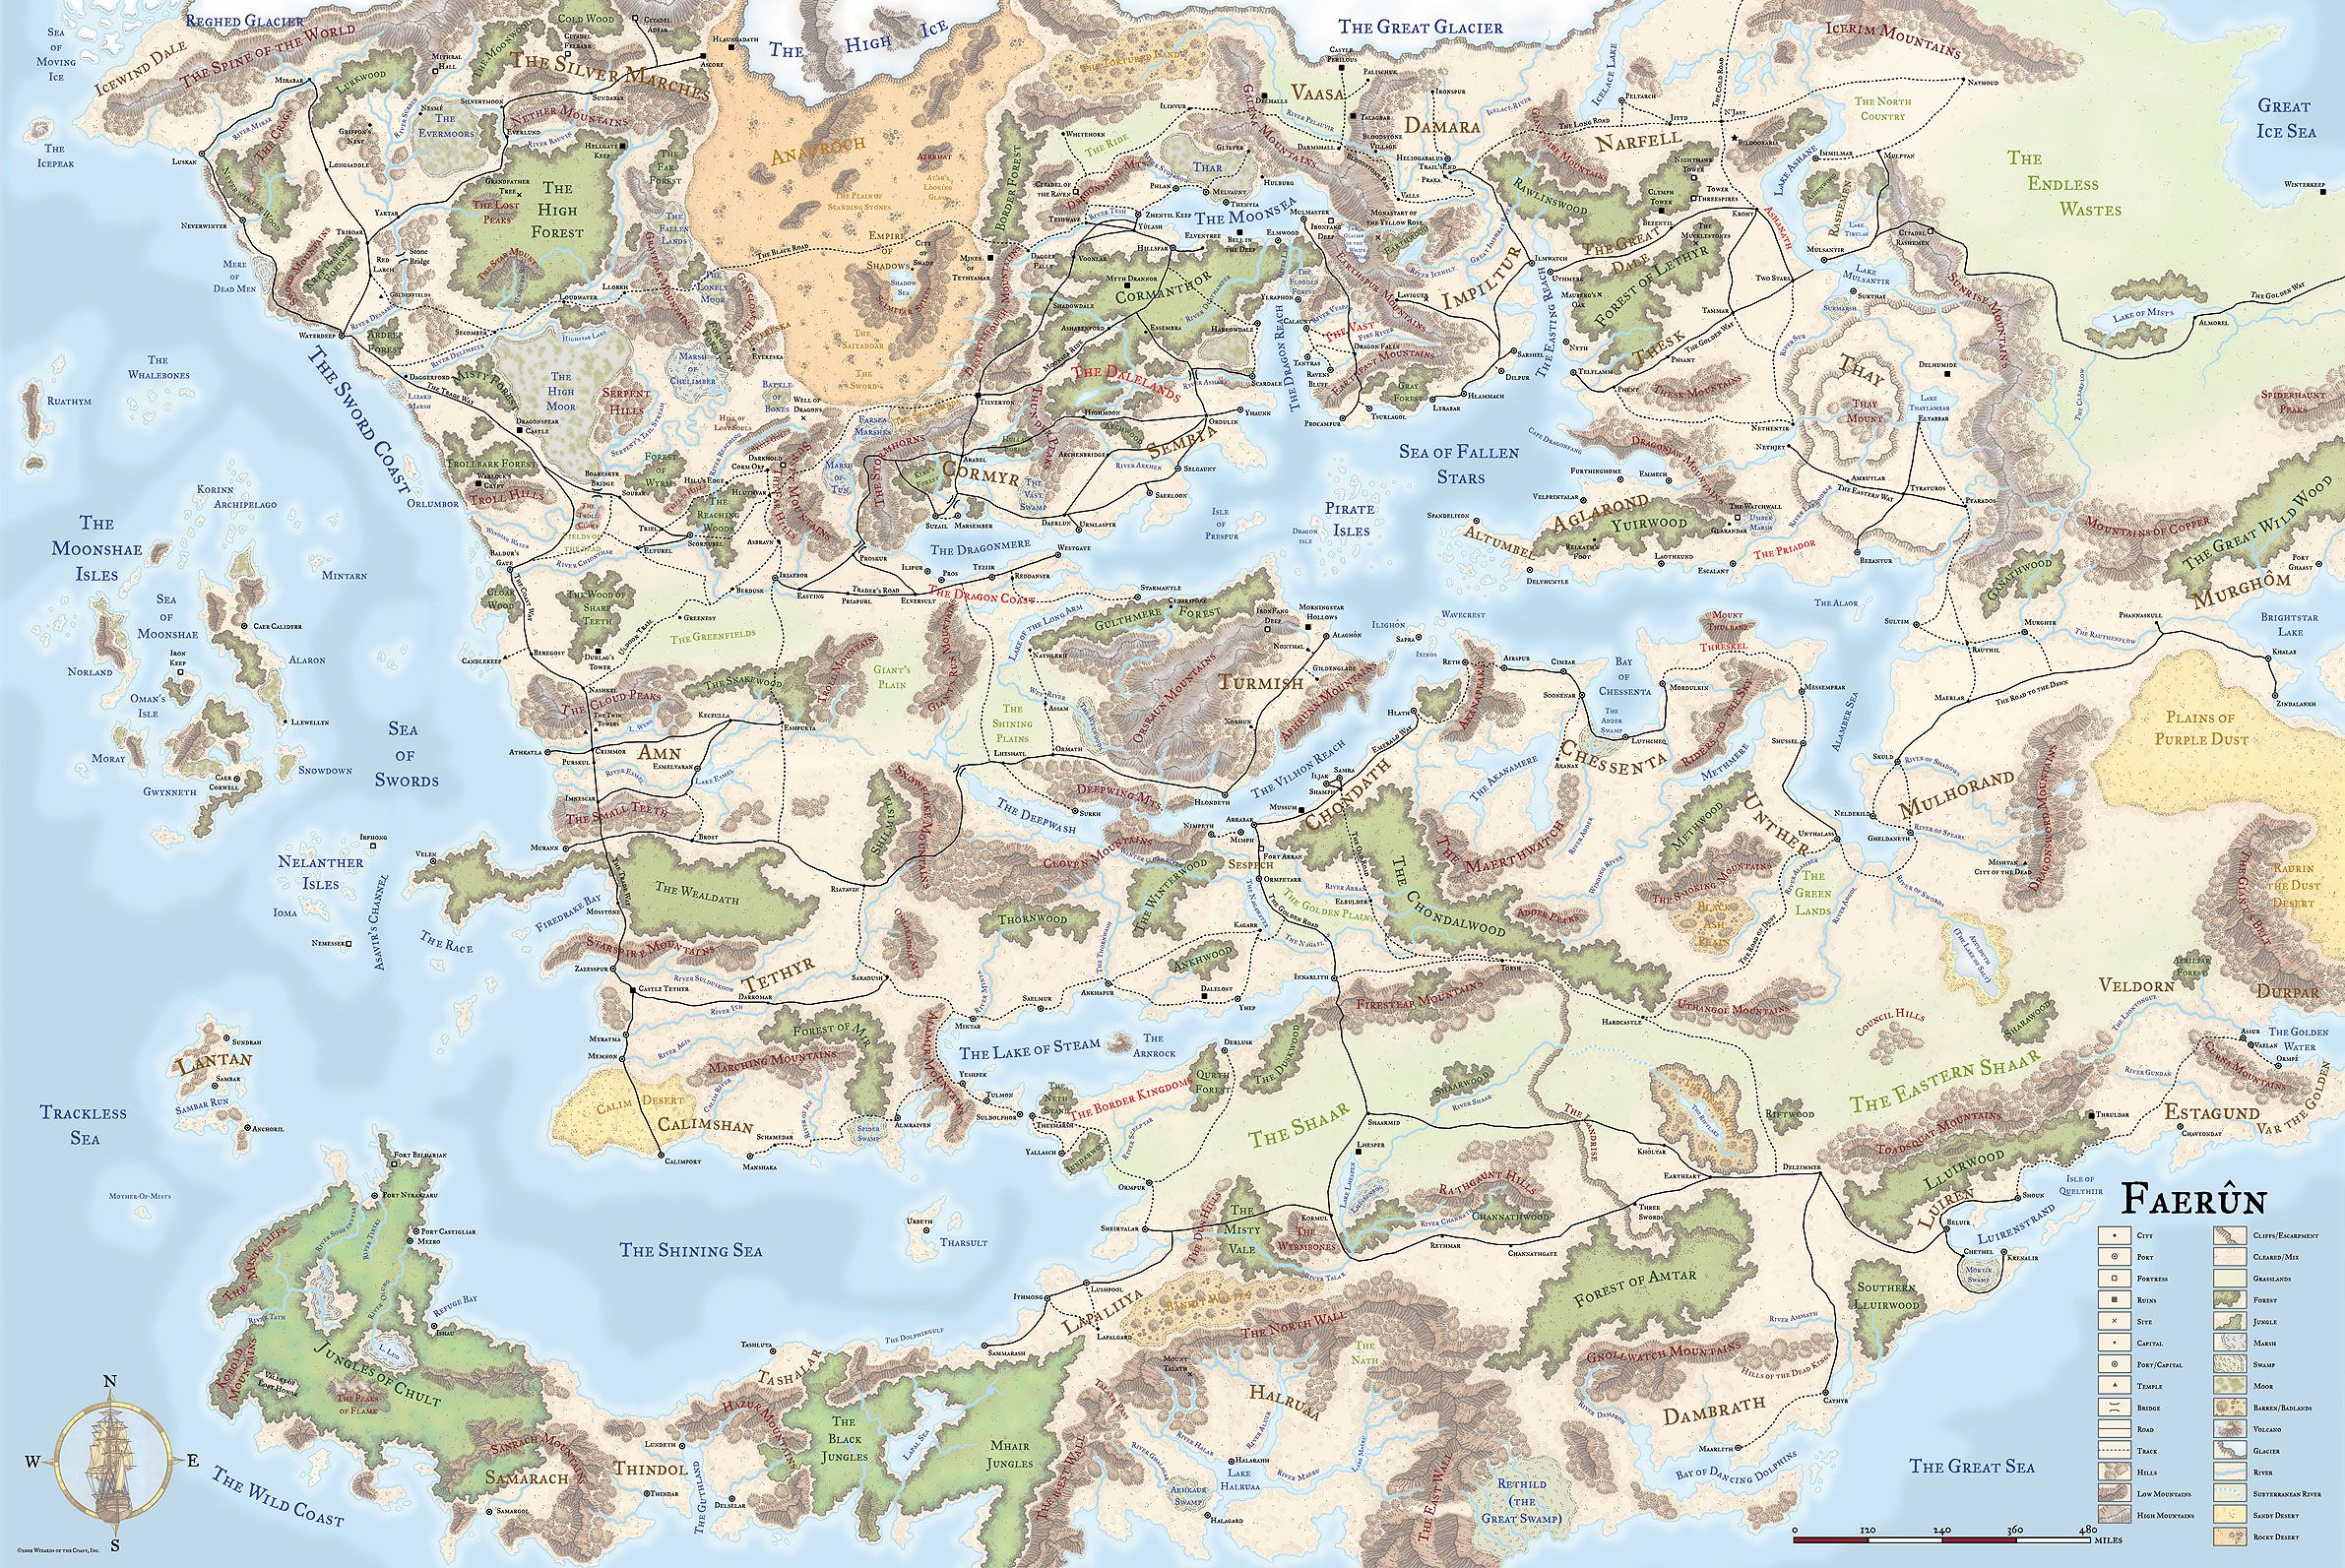 Faerun circa 1372 D R the newer version of the map The older one